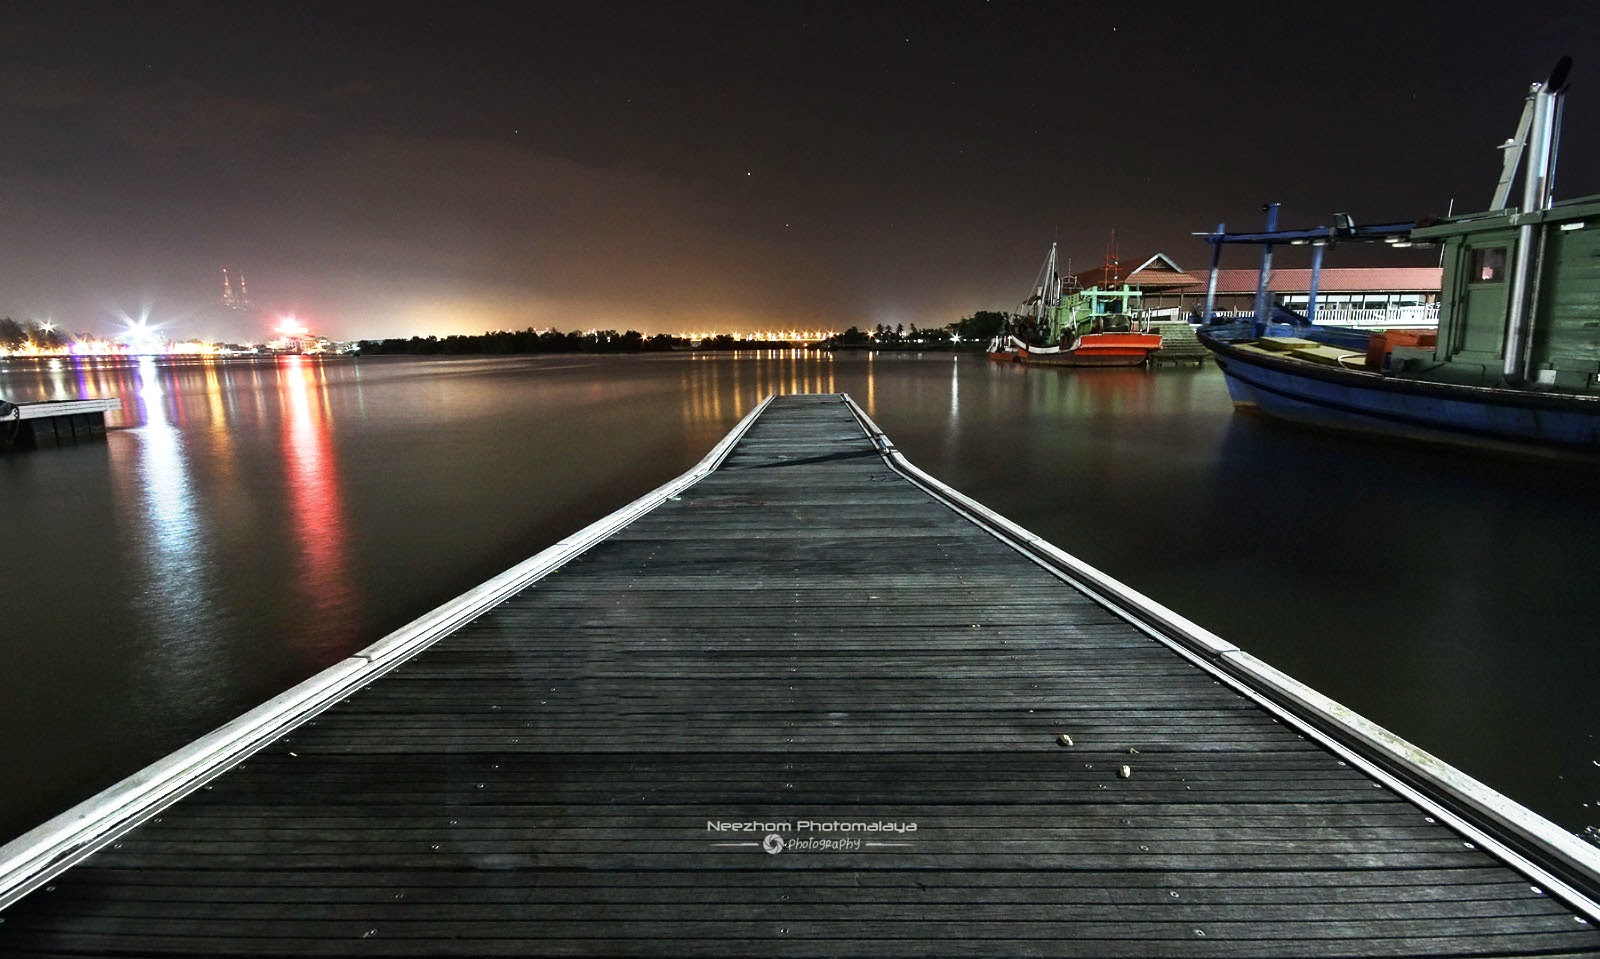 Jeti di Pulau Duyong night shot